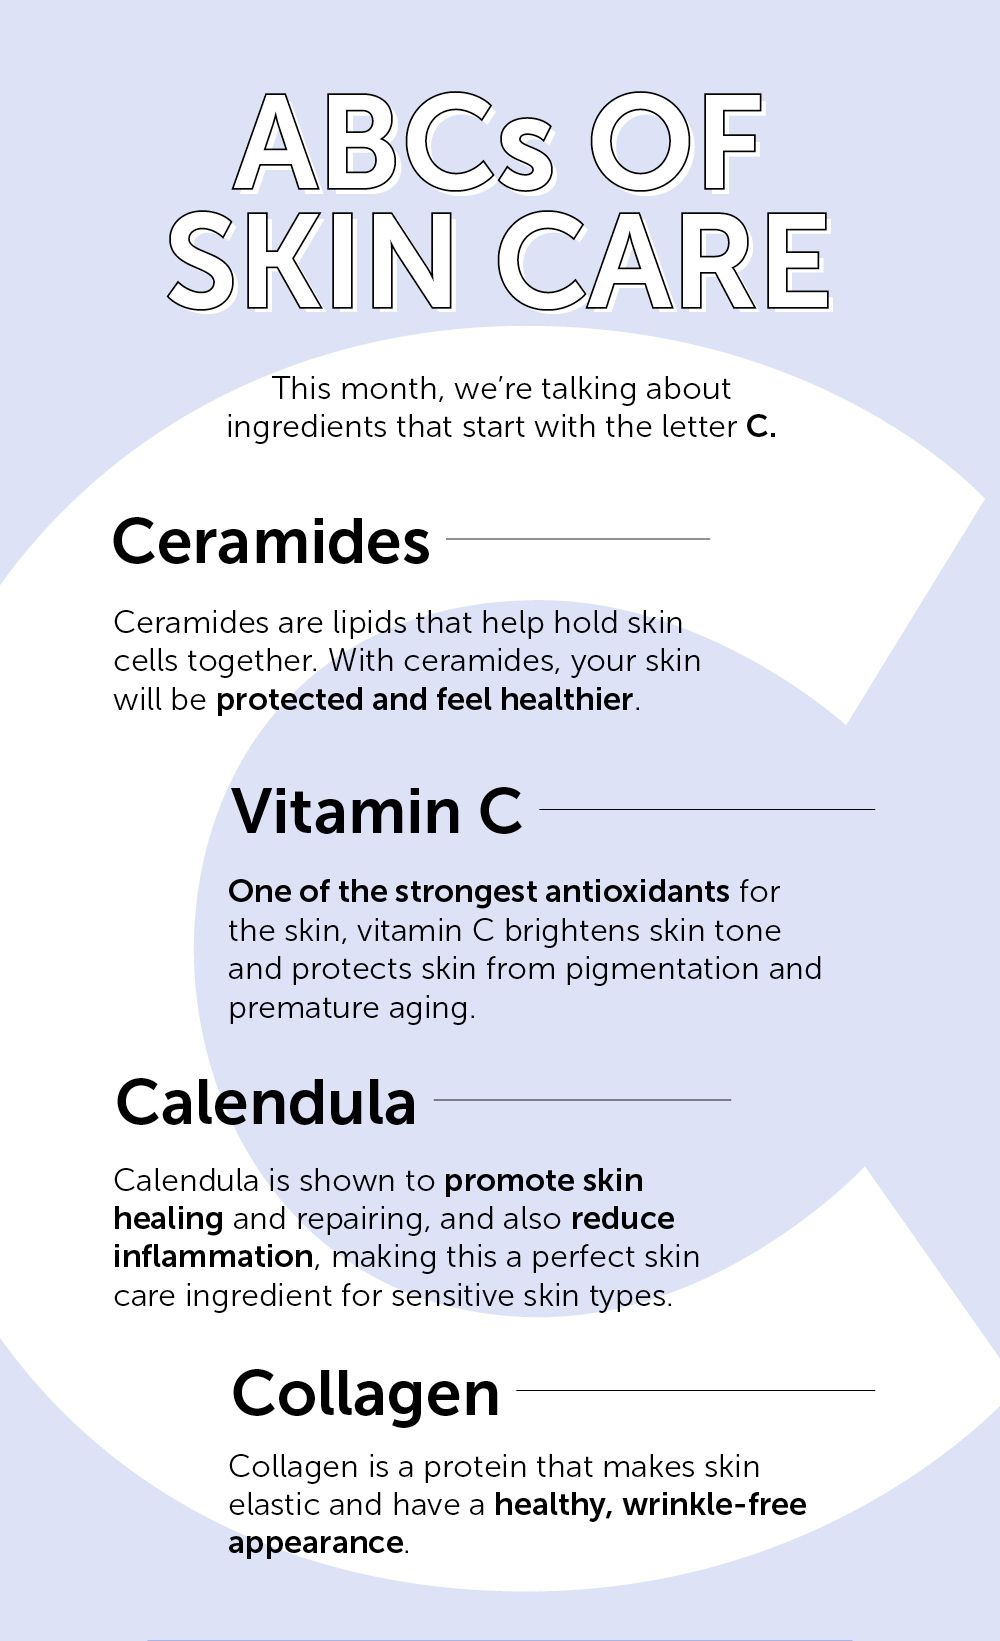 Korean Skin Care Ingredients Glossary From A To Z The Klog Promote Skin Healing Skin Healing Skin Care